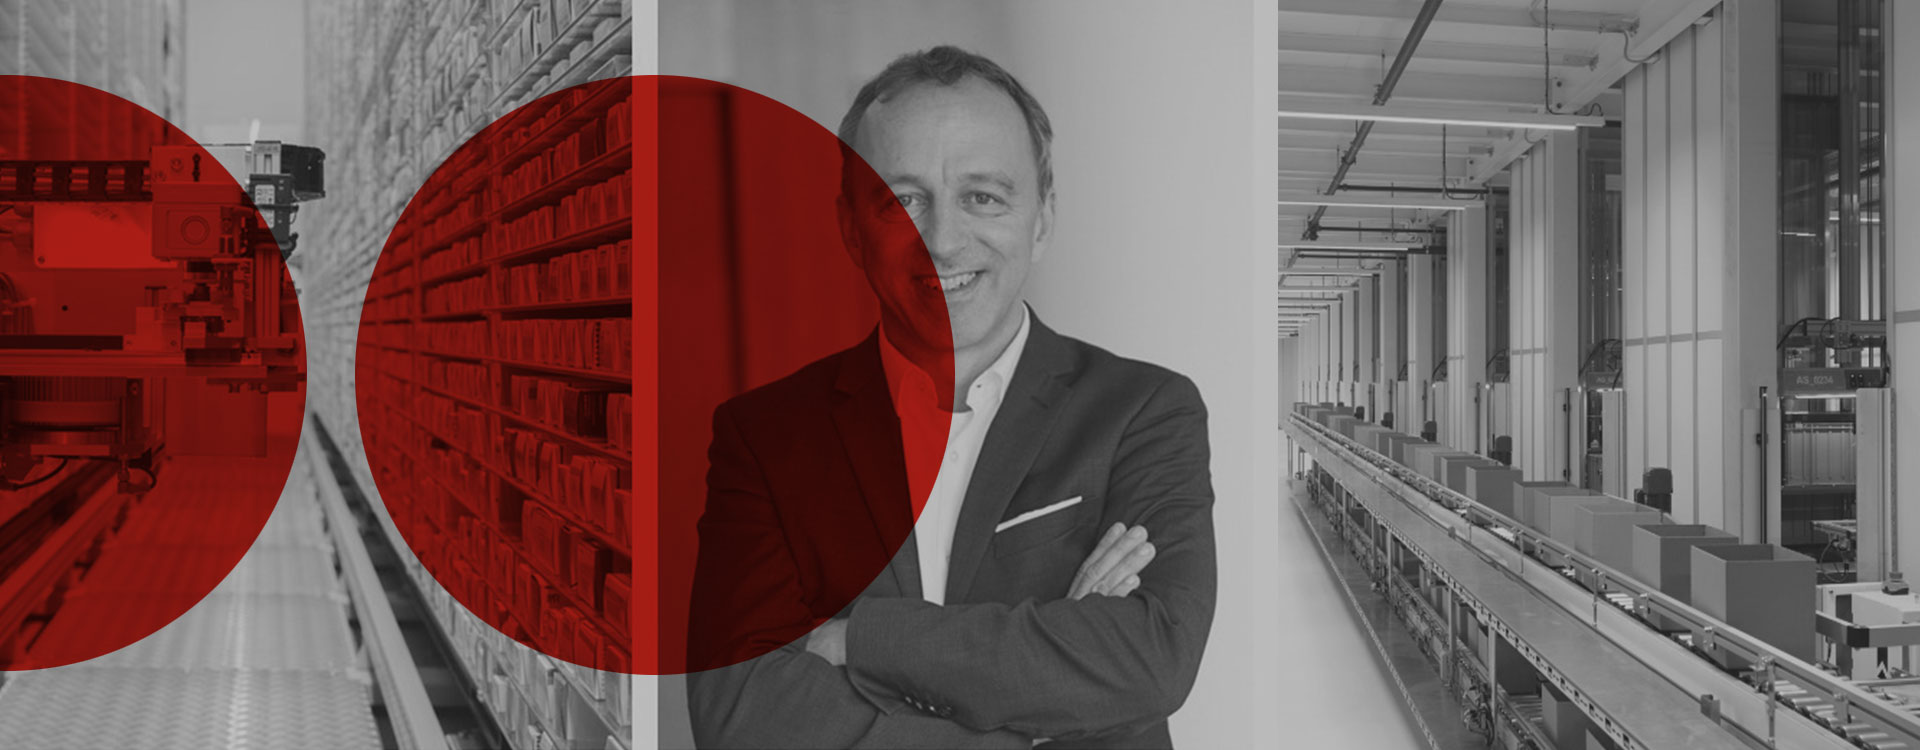 Dr. Oliver Scheel new CEO at Apologistics GmbH